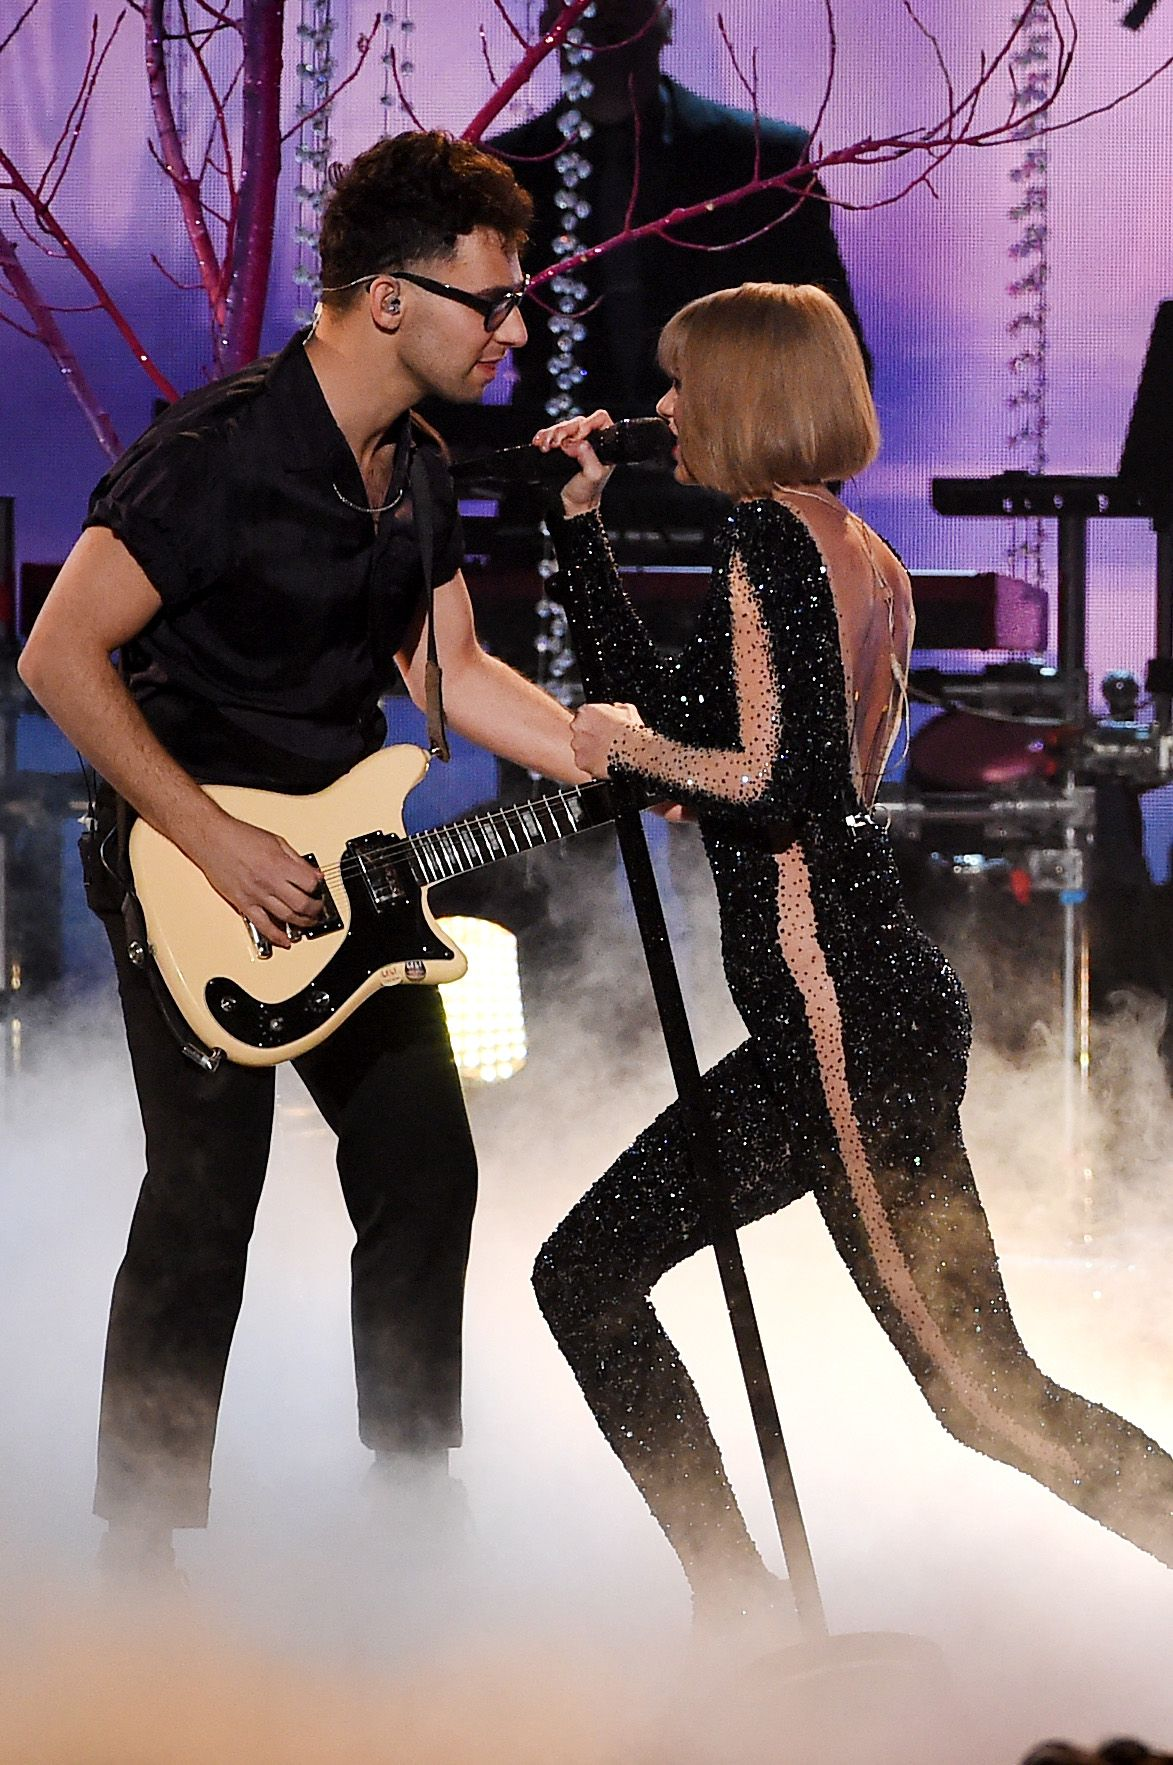 Jack Antonoff Reveals The 'Heart And Soul' Of Taylor Swift's Songwriting Process 2